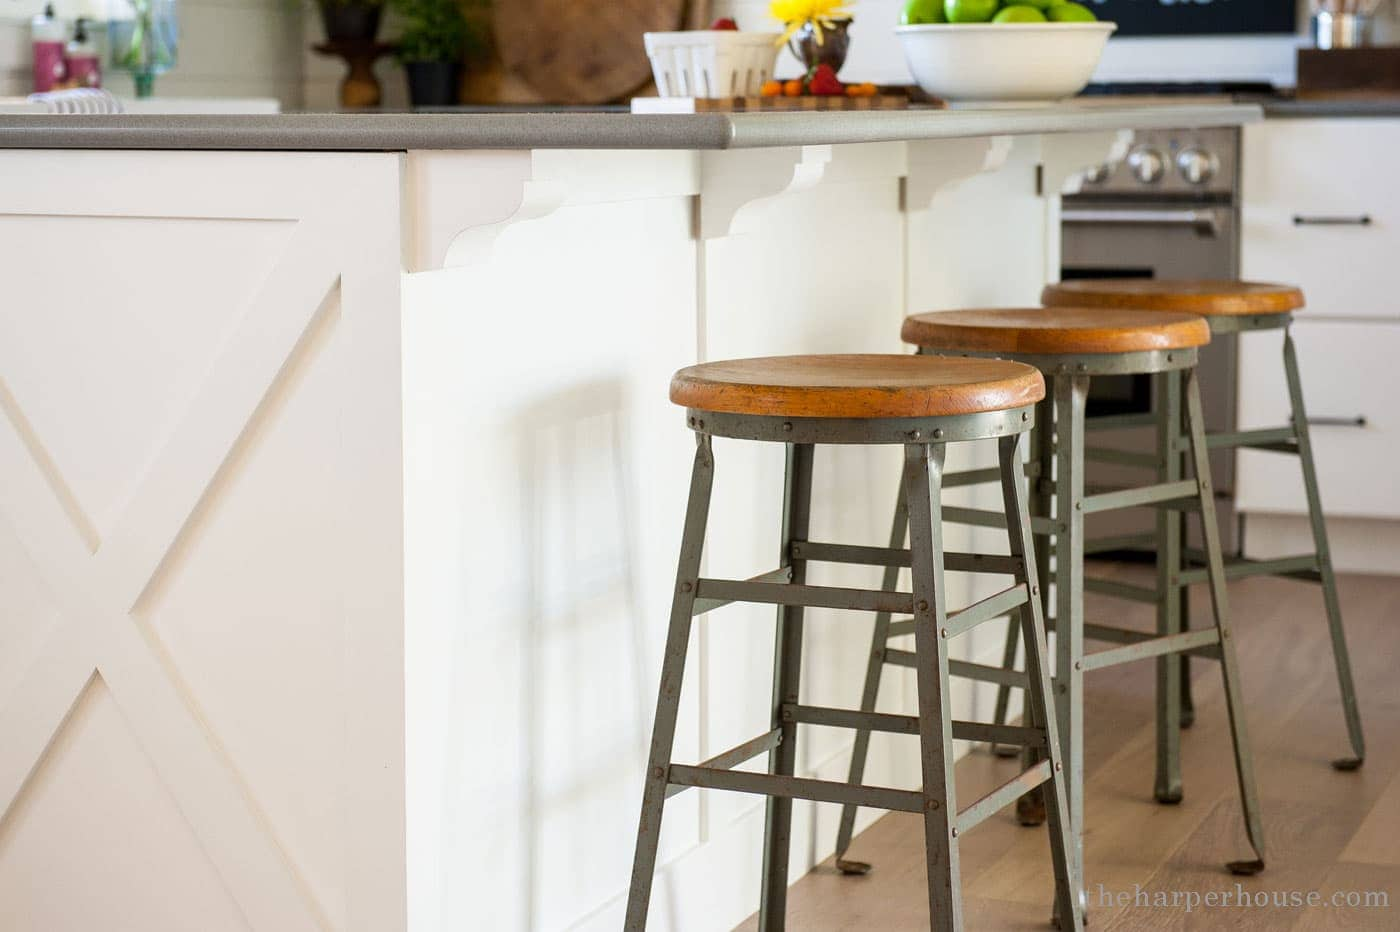 diy kitchen island upgrade with $5 wooden corbels | farmhouse kitchen reveal www.theharperhouse.com